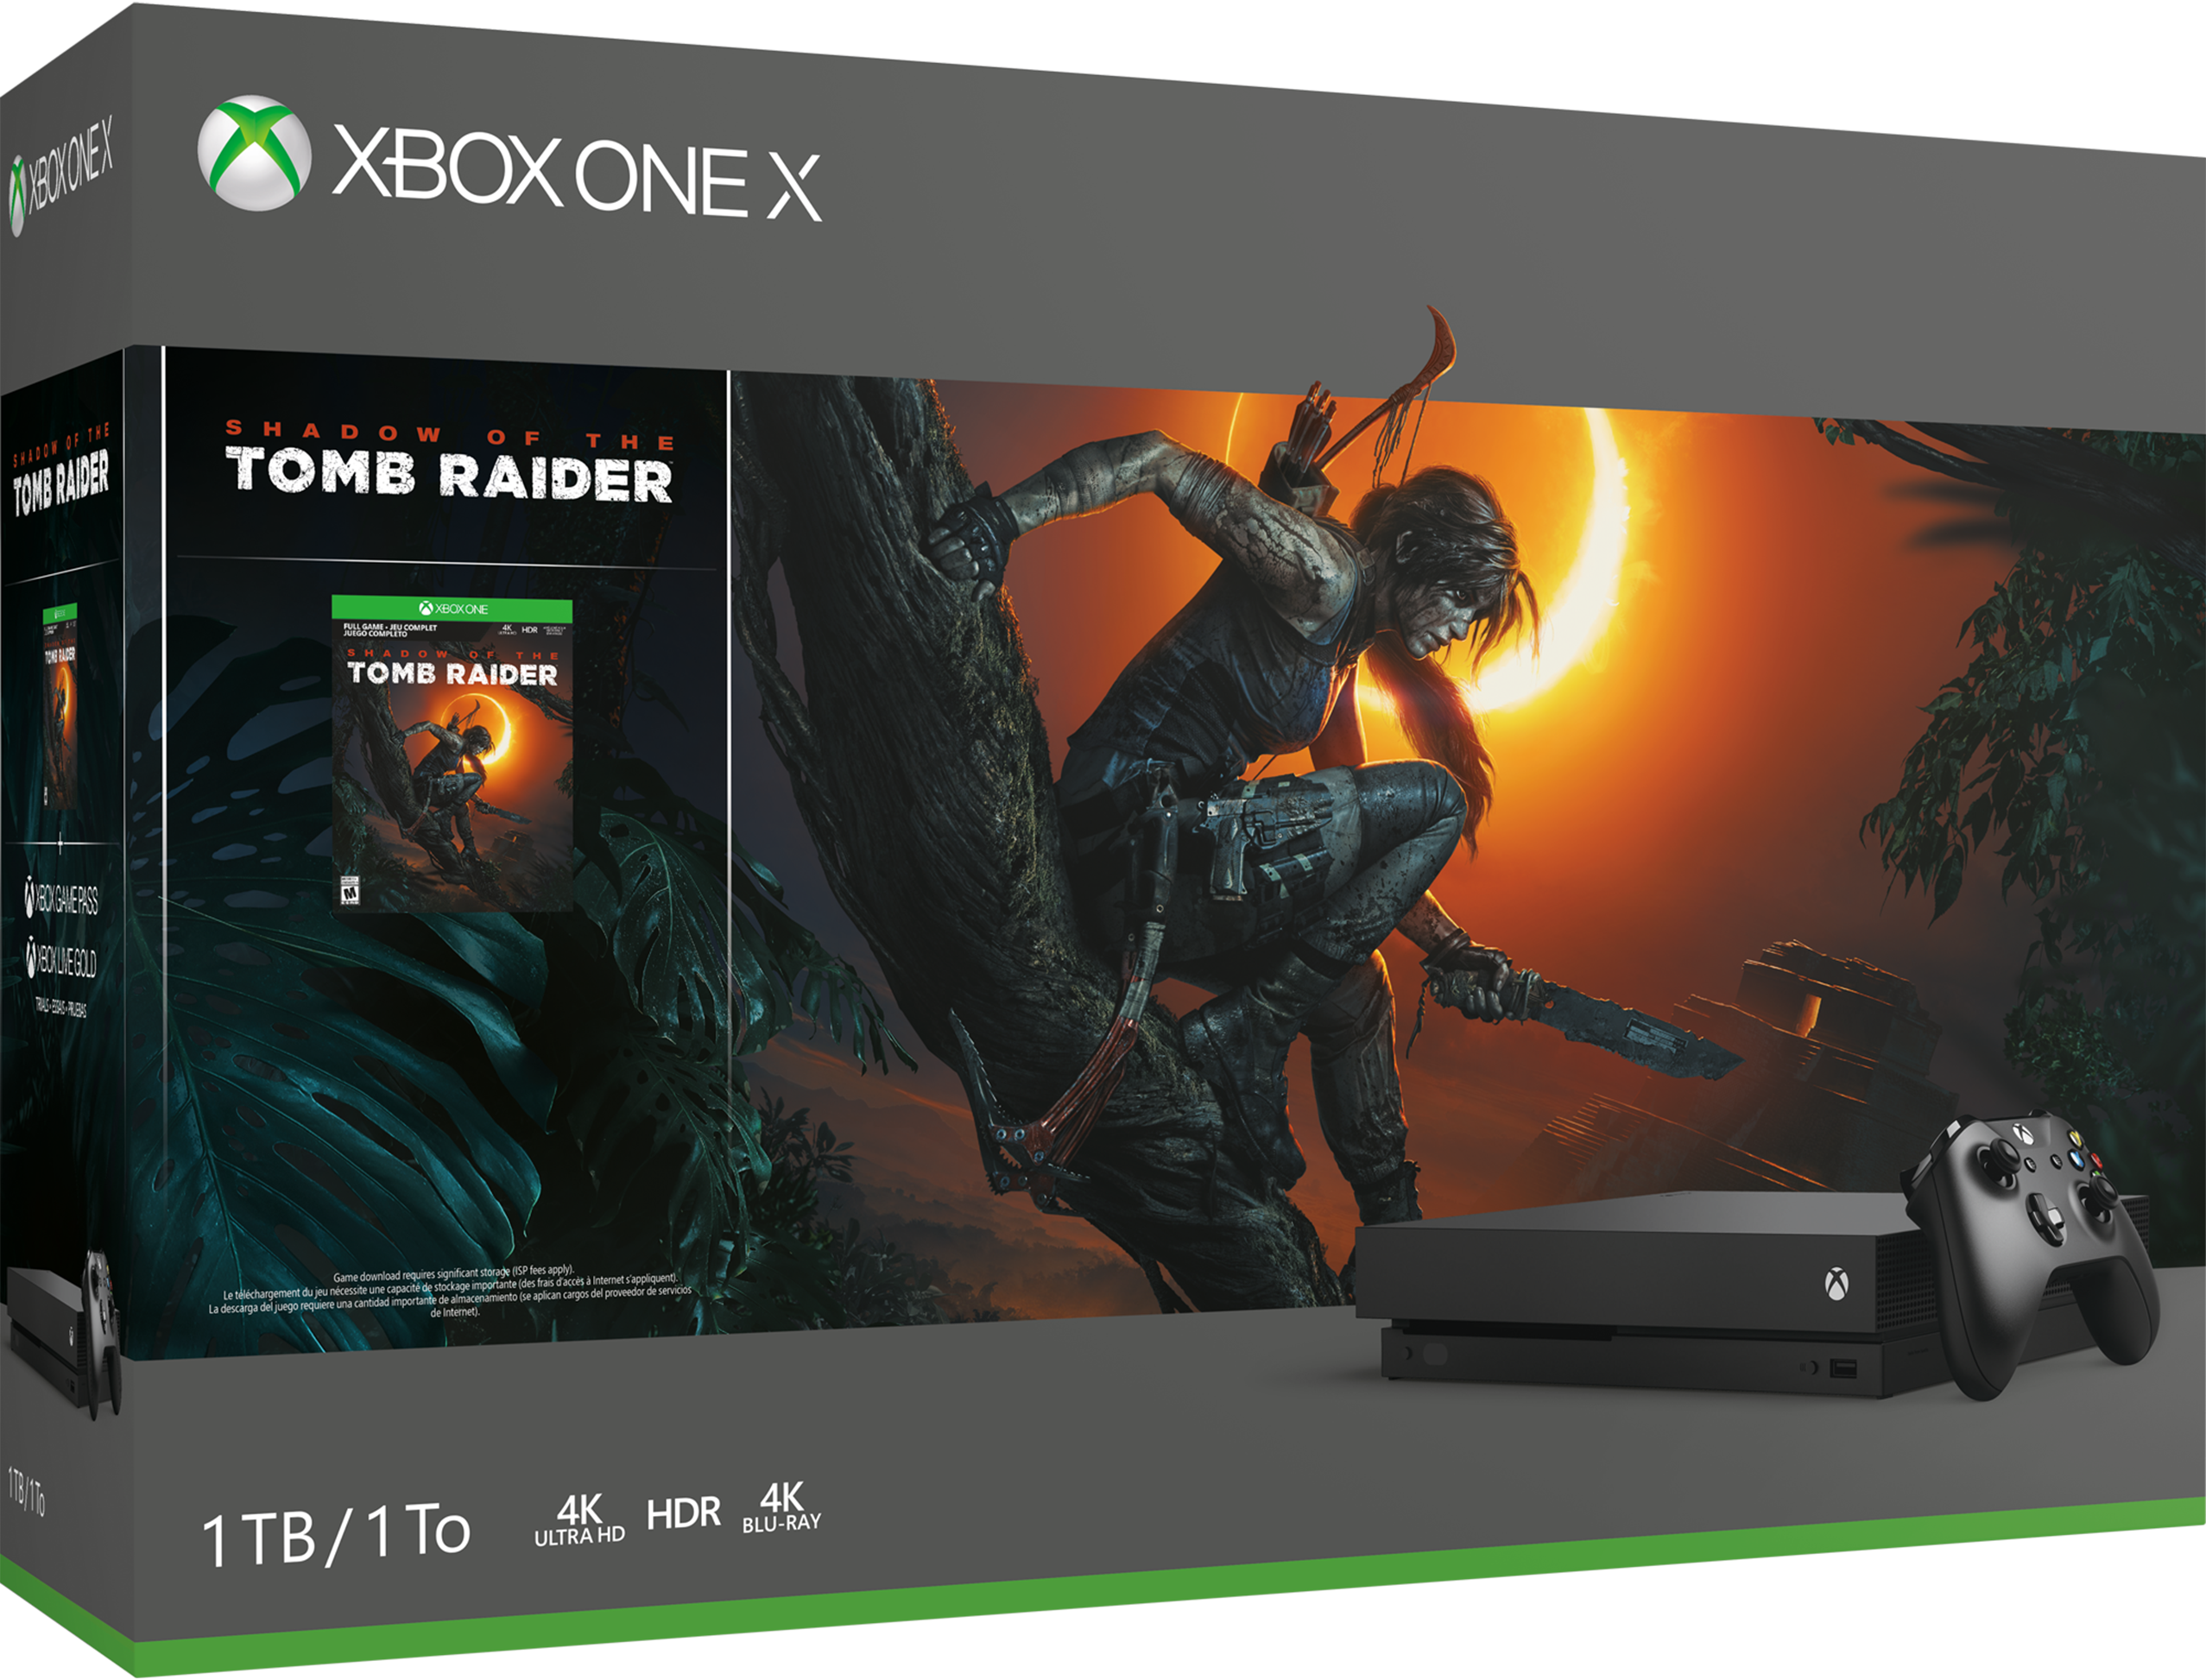 Pack Xbox One X Shadow of the Tomb Raider (1 To) – Xbox One